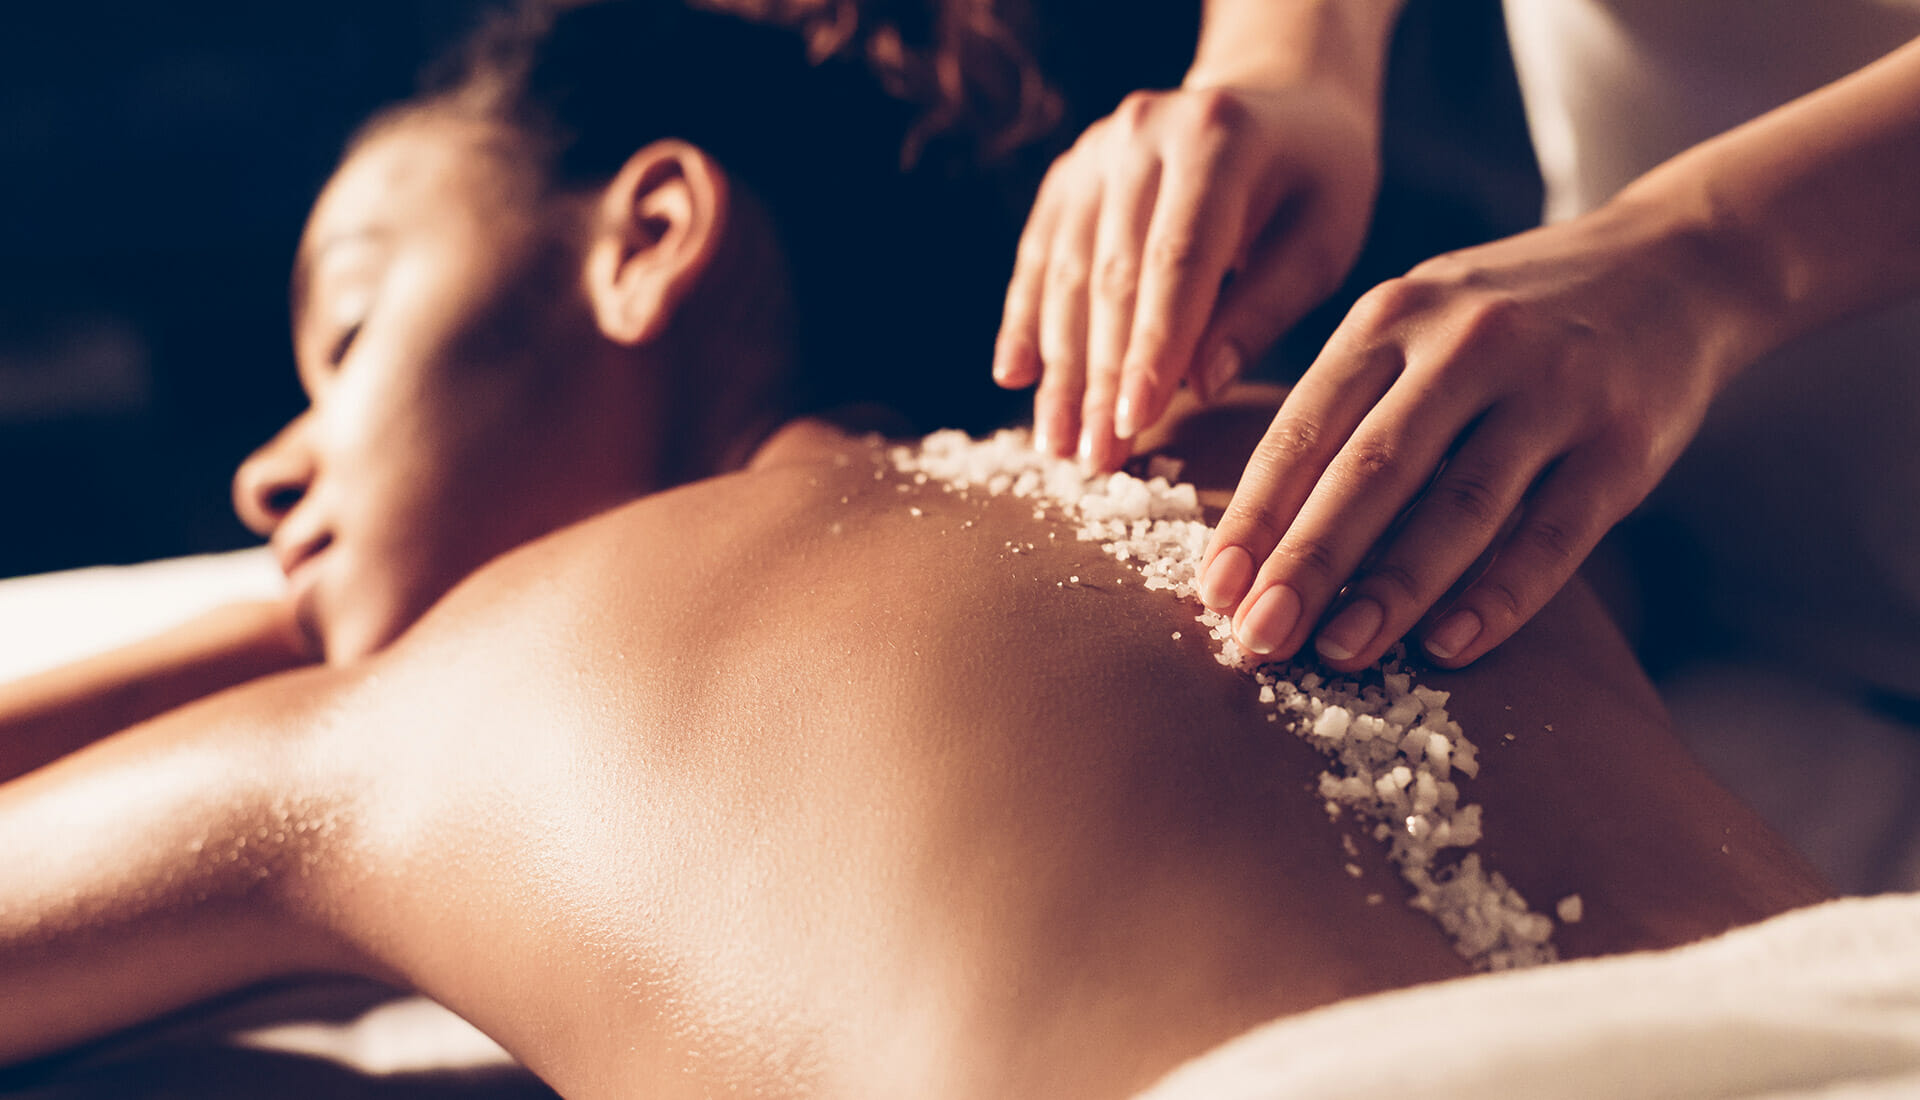 HEALING WATERS SPA MONTHLY SPECIAL - July 2021